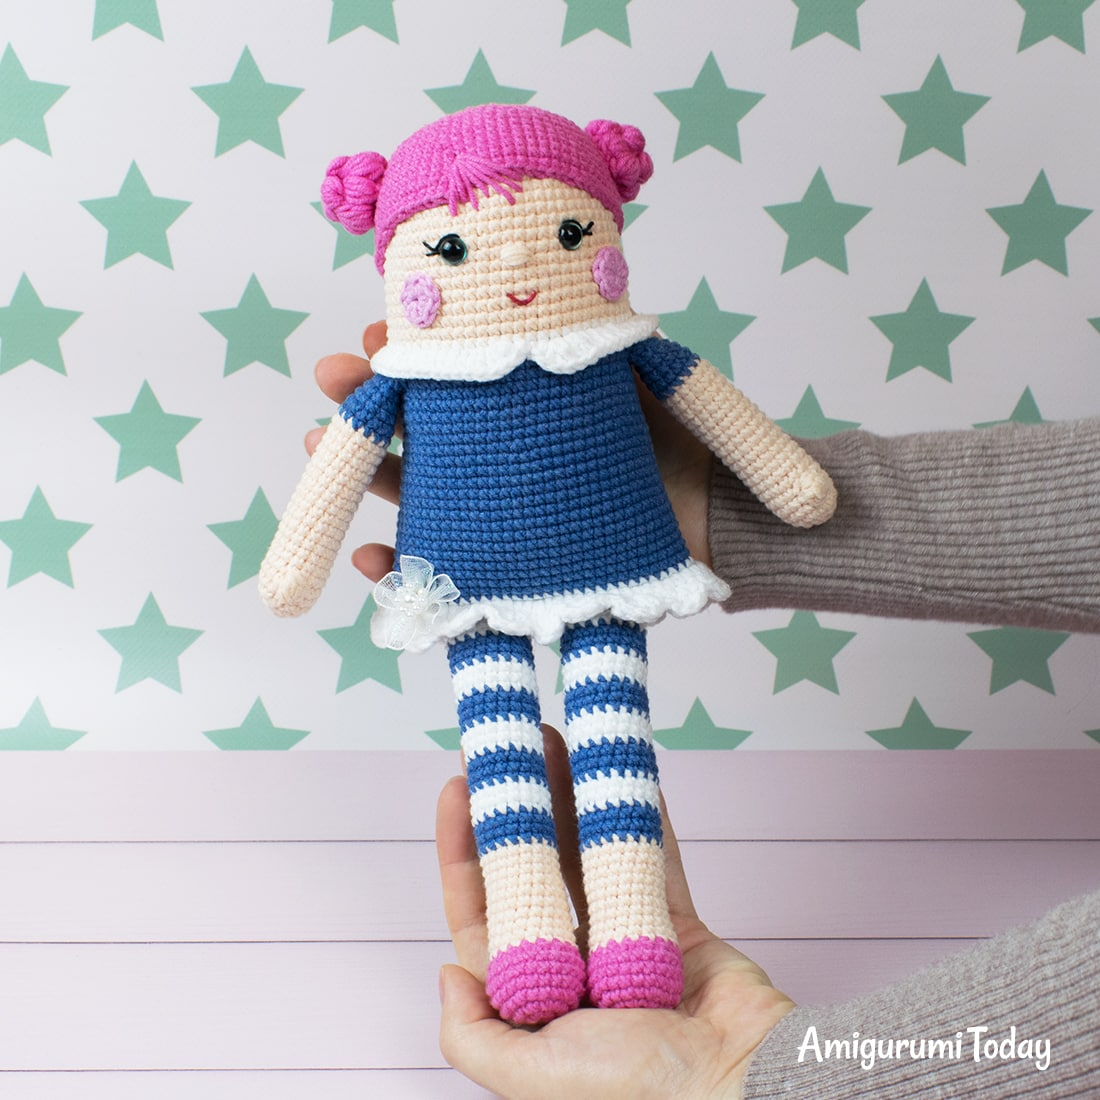 Crocheted rag doll pattern by Amigurumi Today